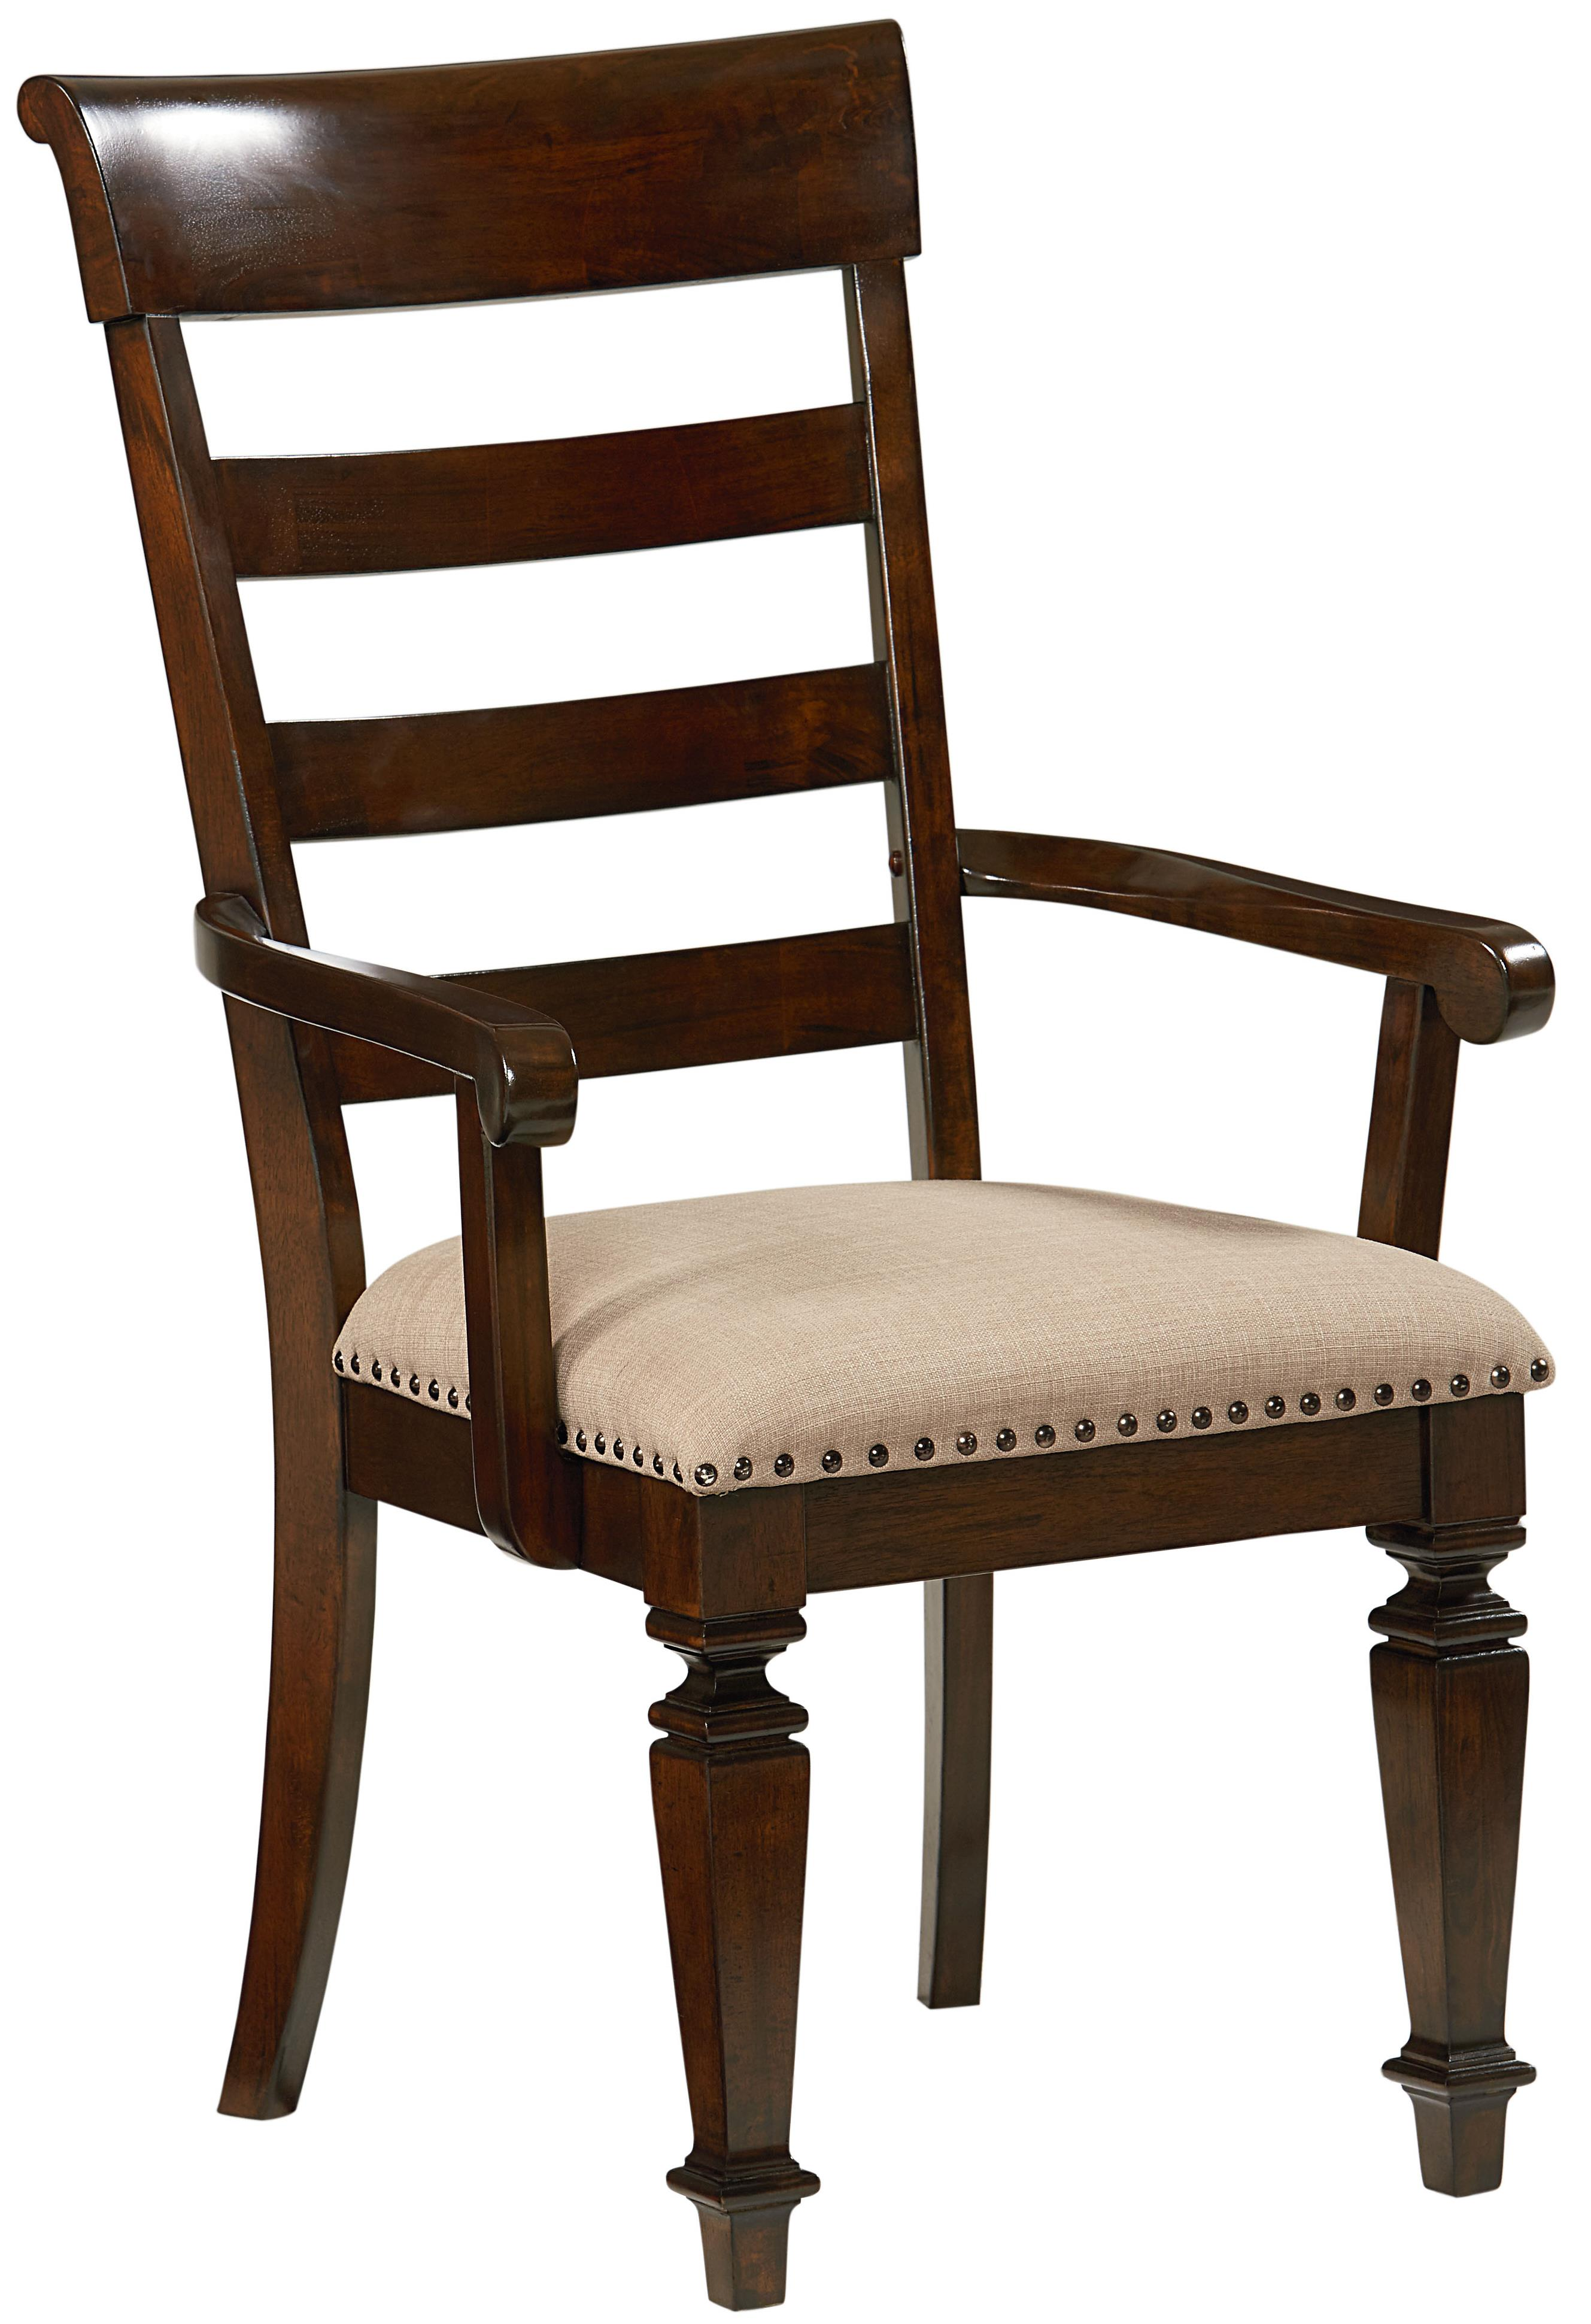 Standard Furniture Charleston 16725 Arm Chair With Upholstered Seat Household Furniture